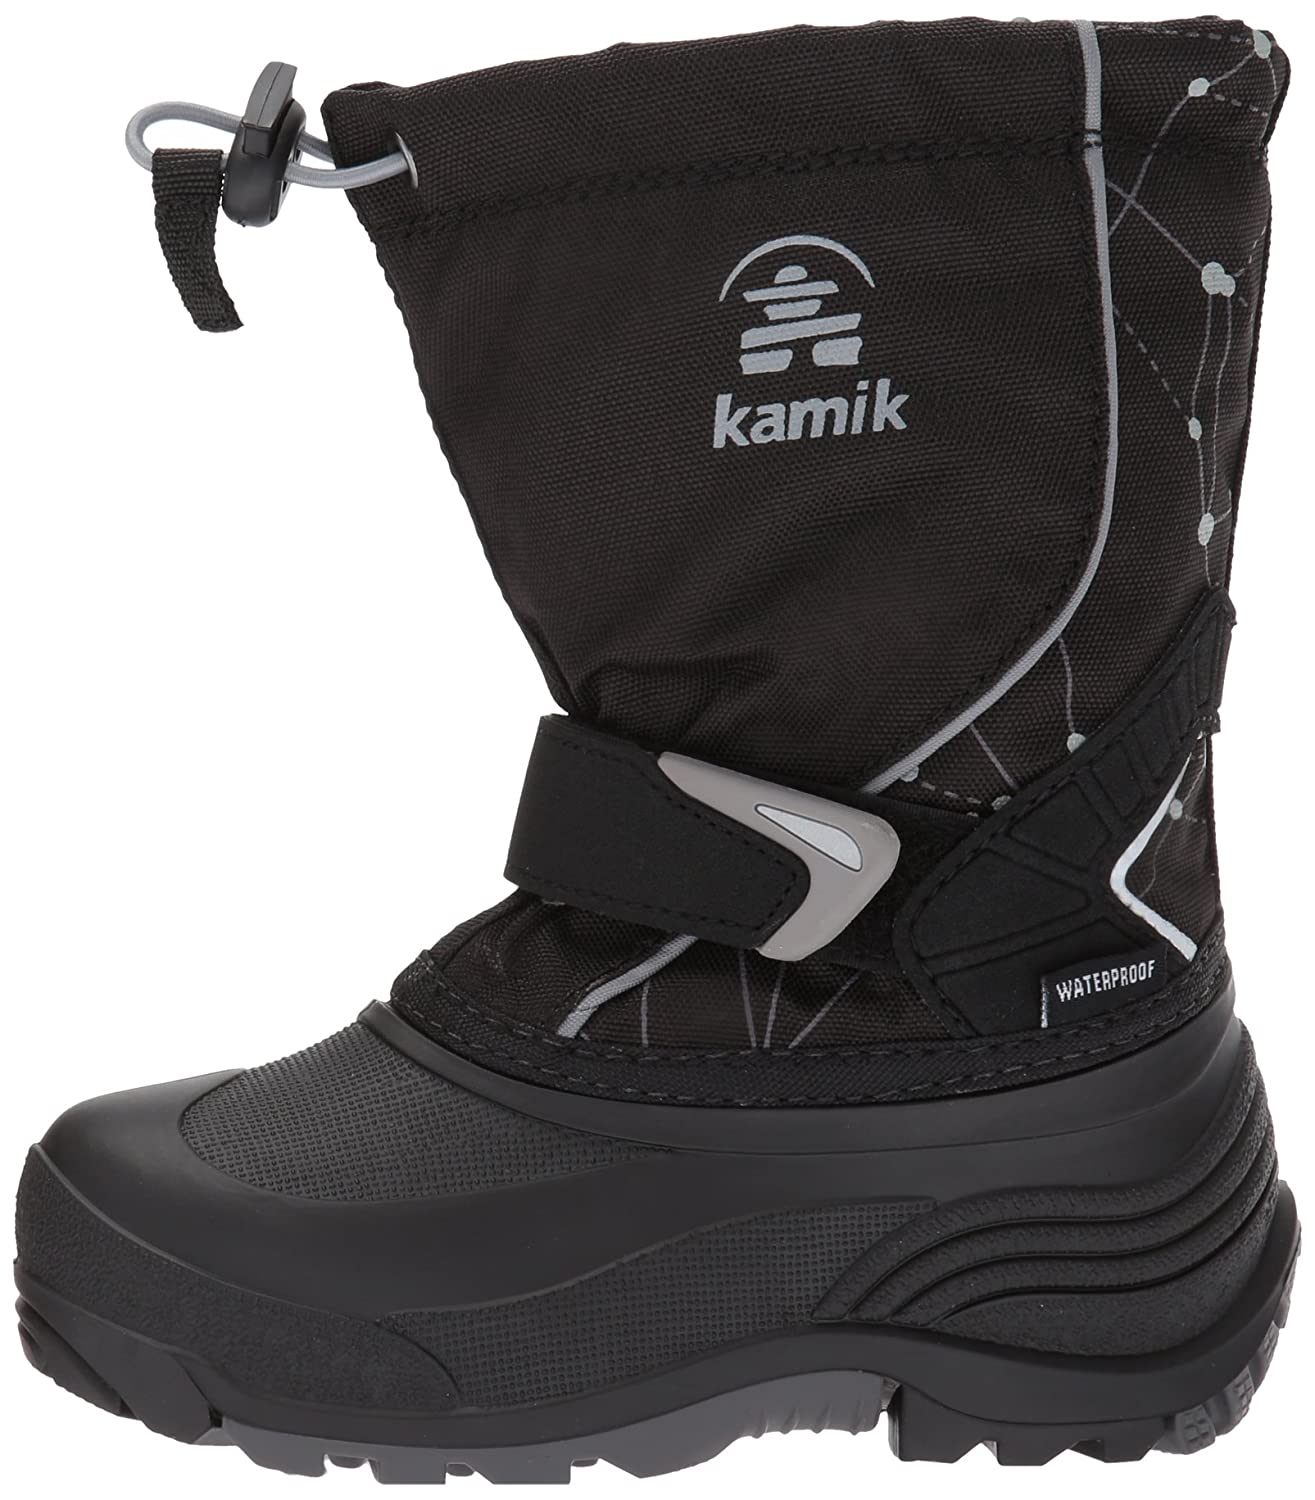 Kamik Kids' Sleet2 Snow Boots, Black, 5 M US Big Kid NK4426S